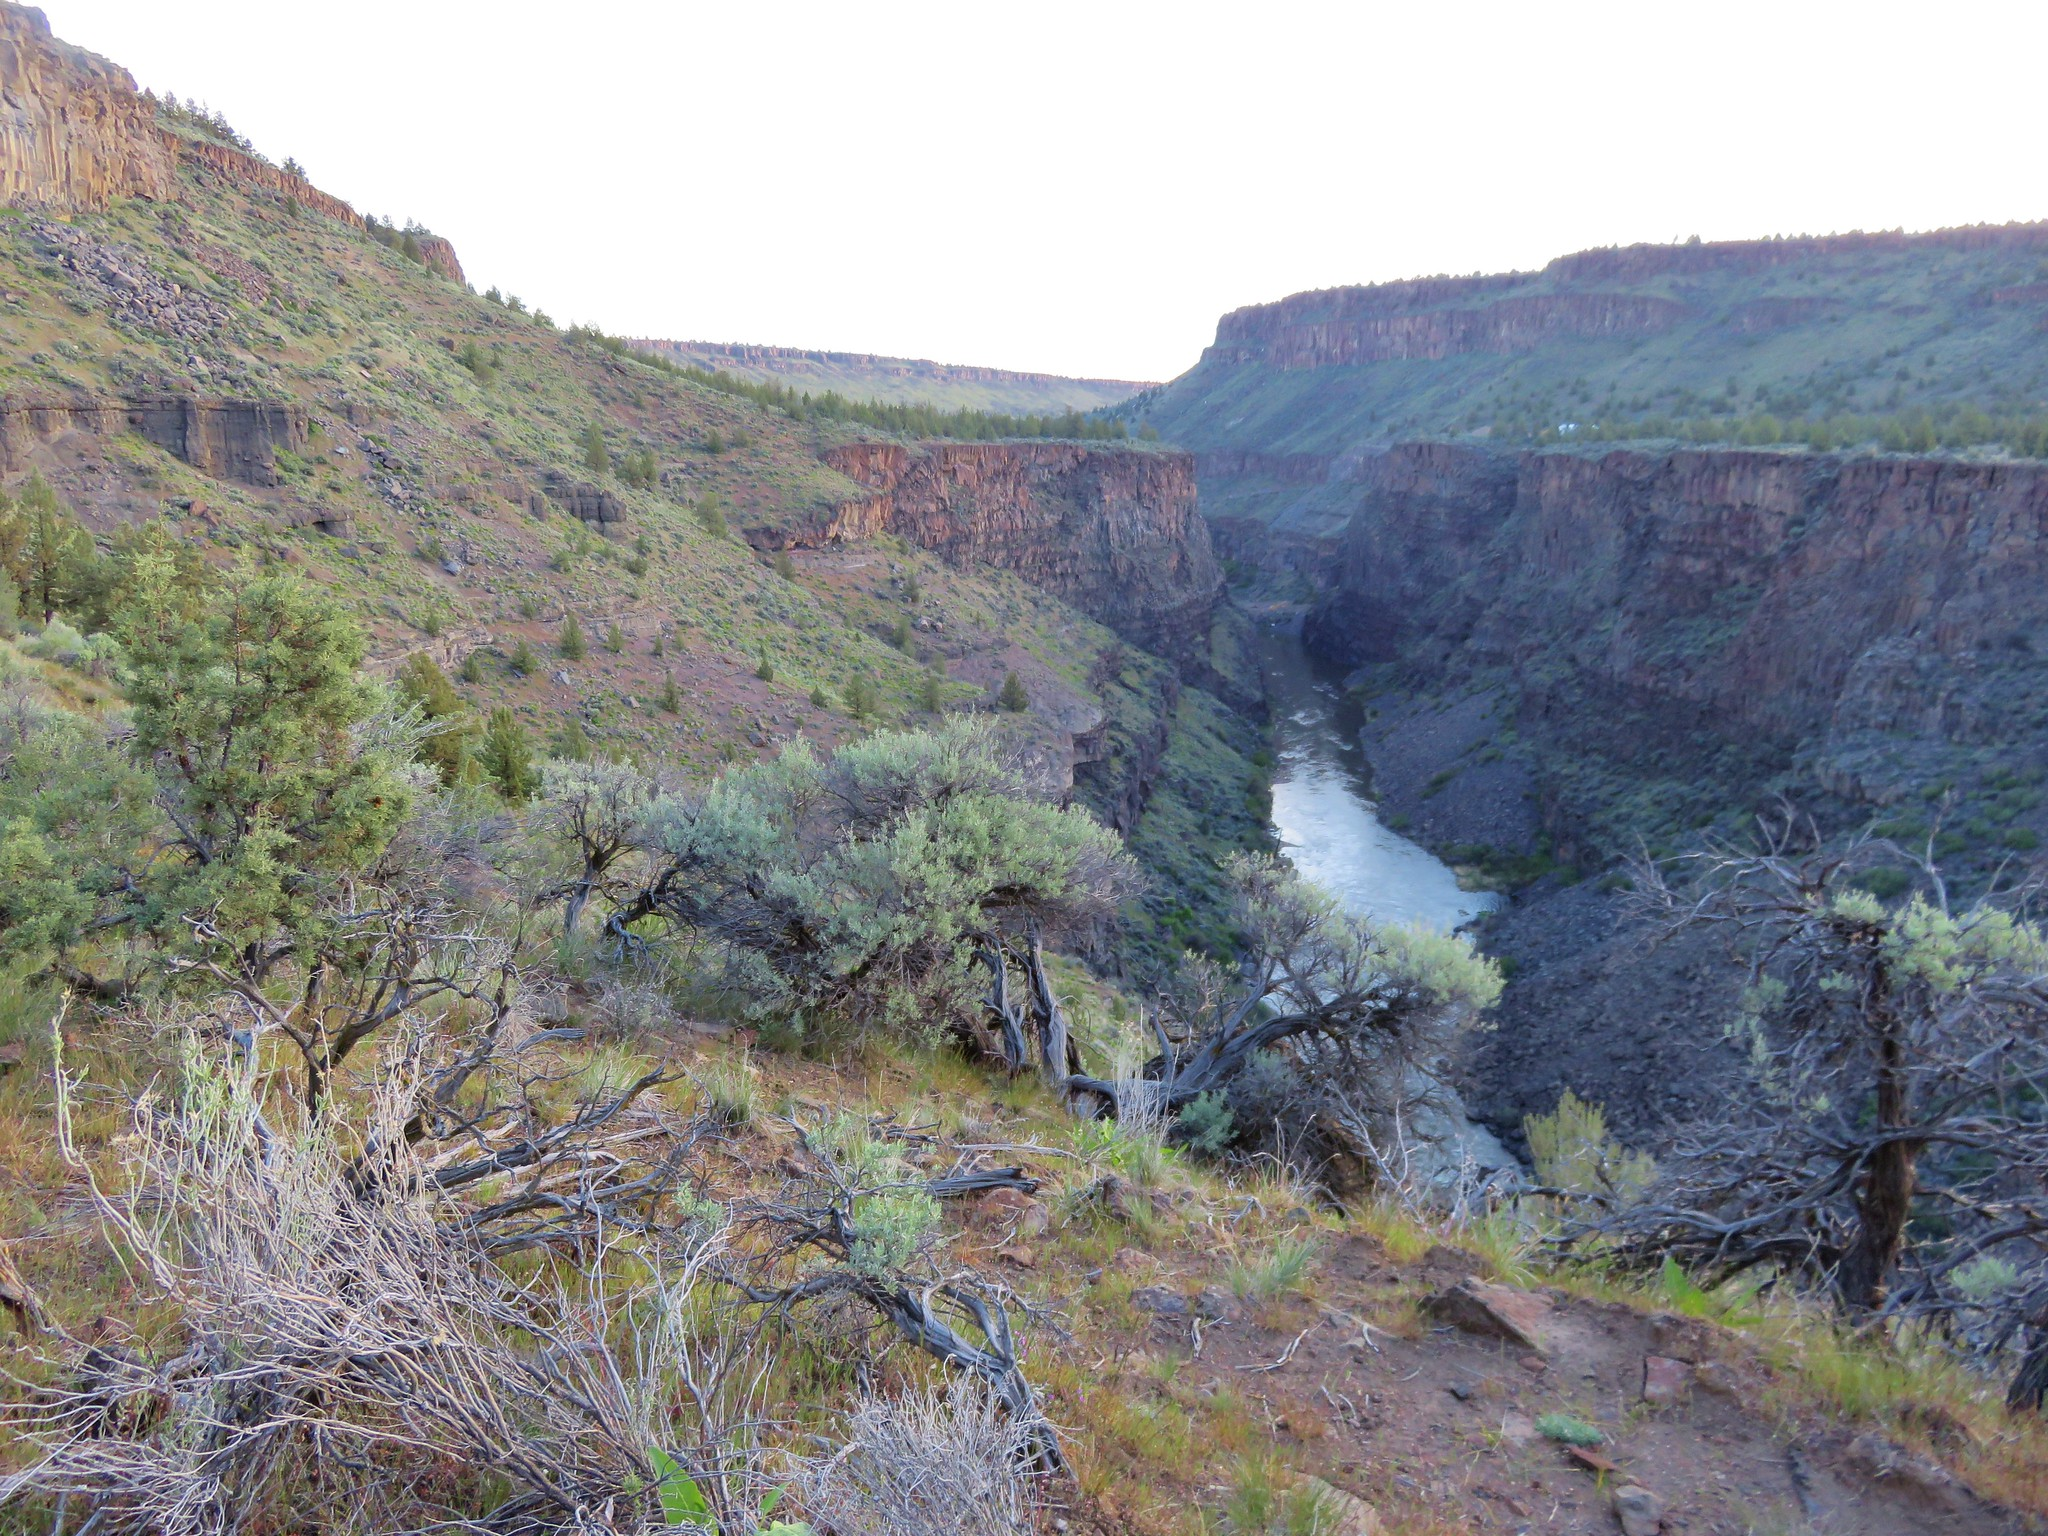 Crooked River Gorge from the Pink Trail